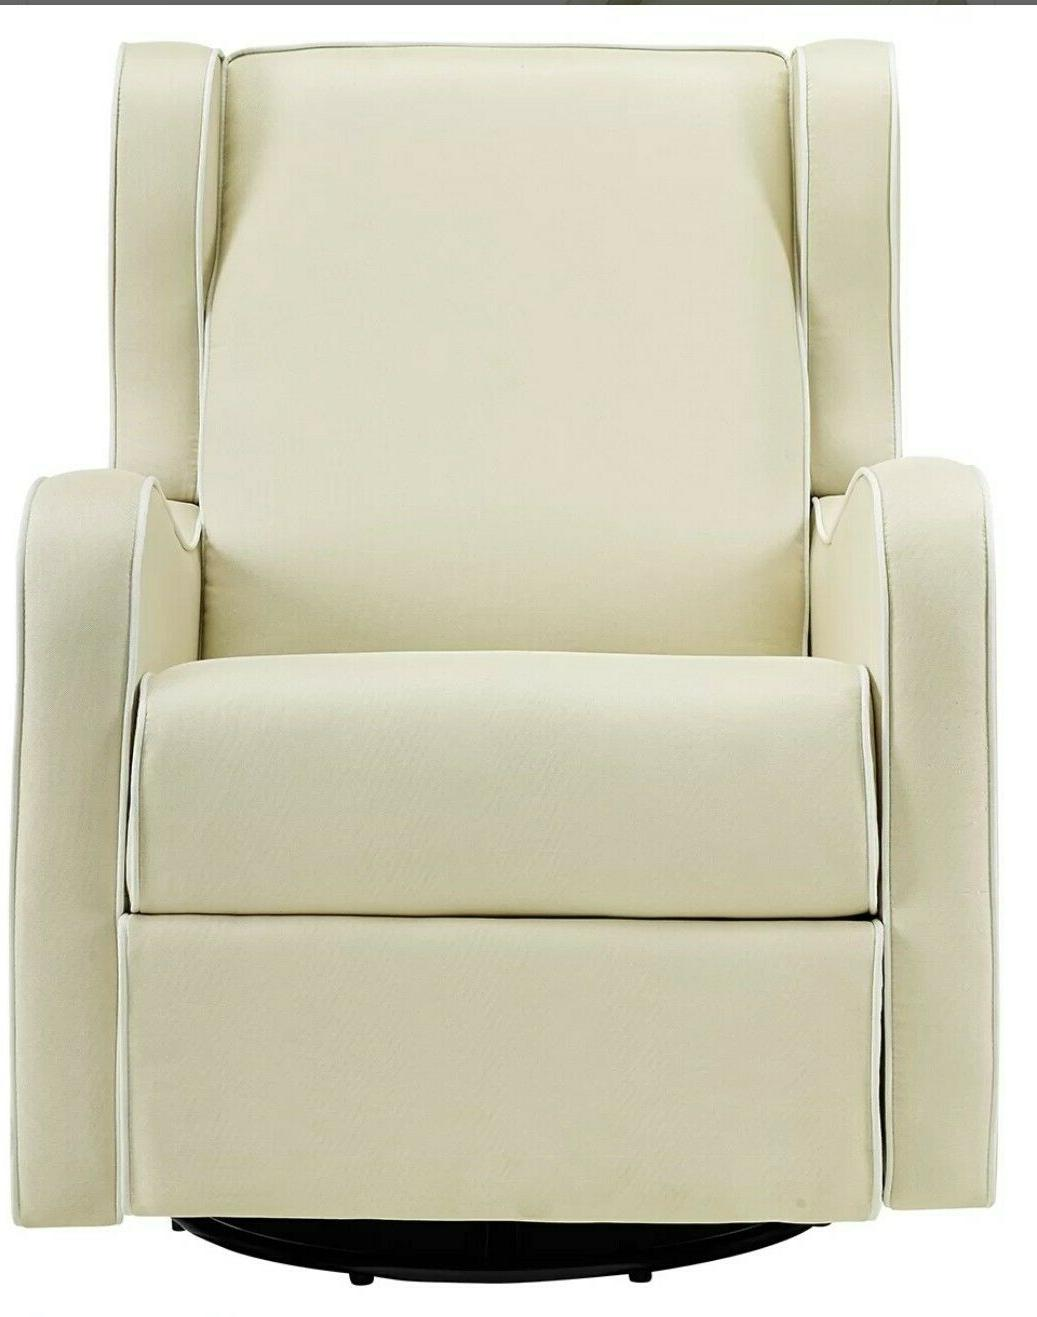 Nursery Chair Beige Great for Baby Furniture